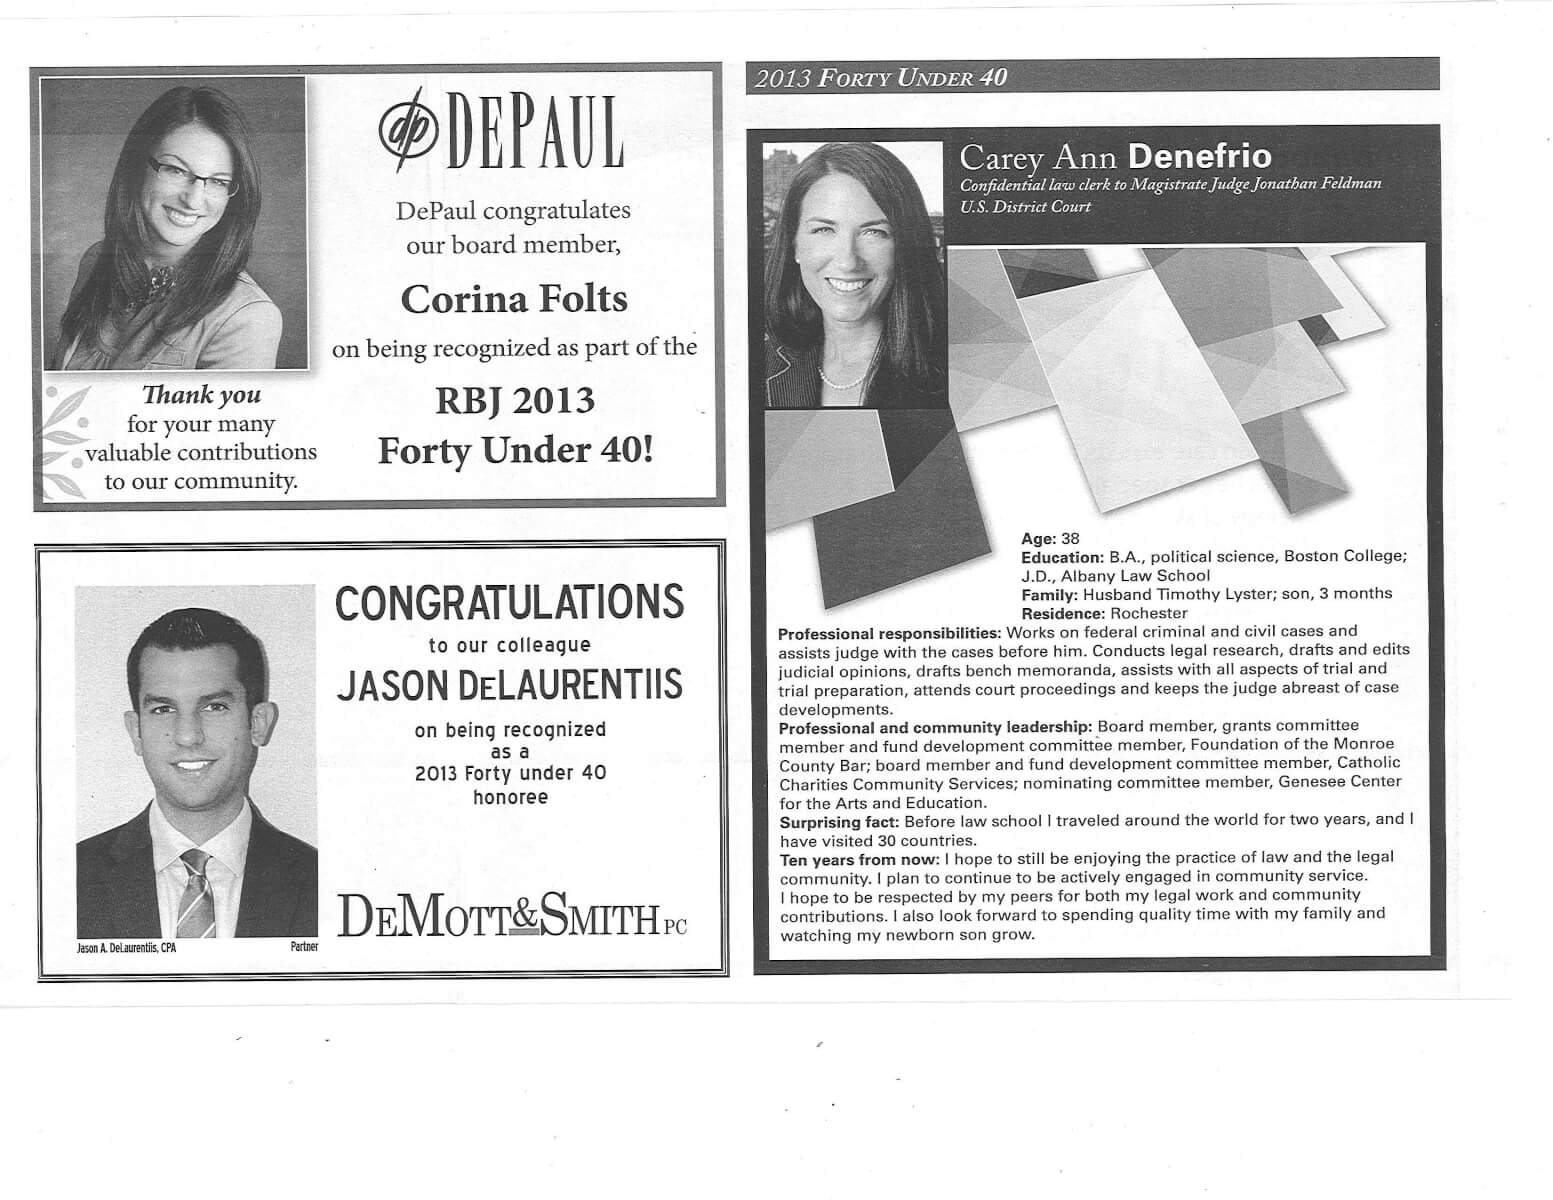 Corina Folts Forty Under 40 in the RBJ November 15, 2013